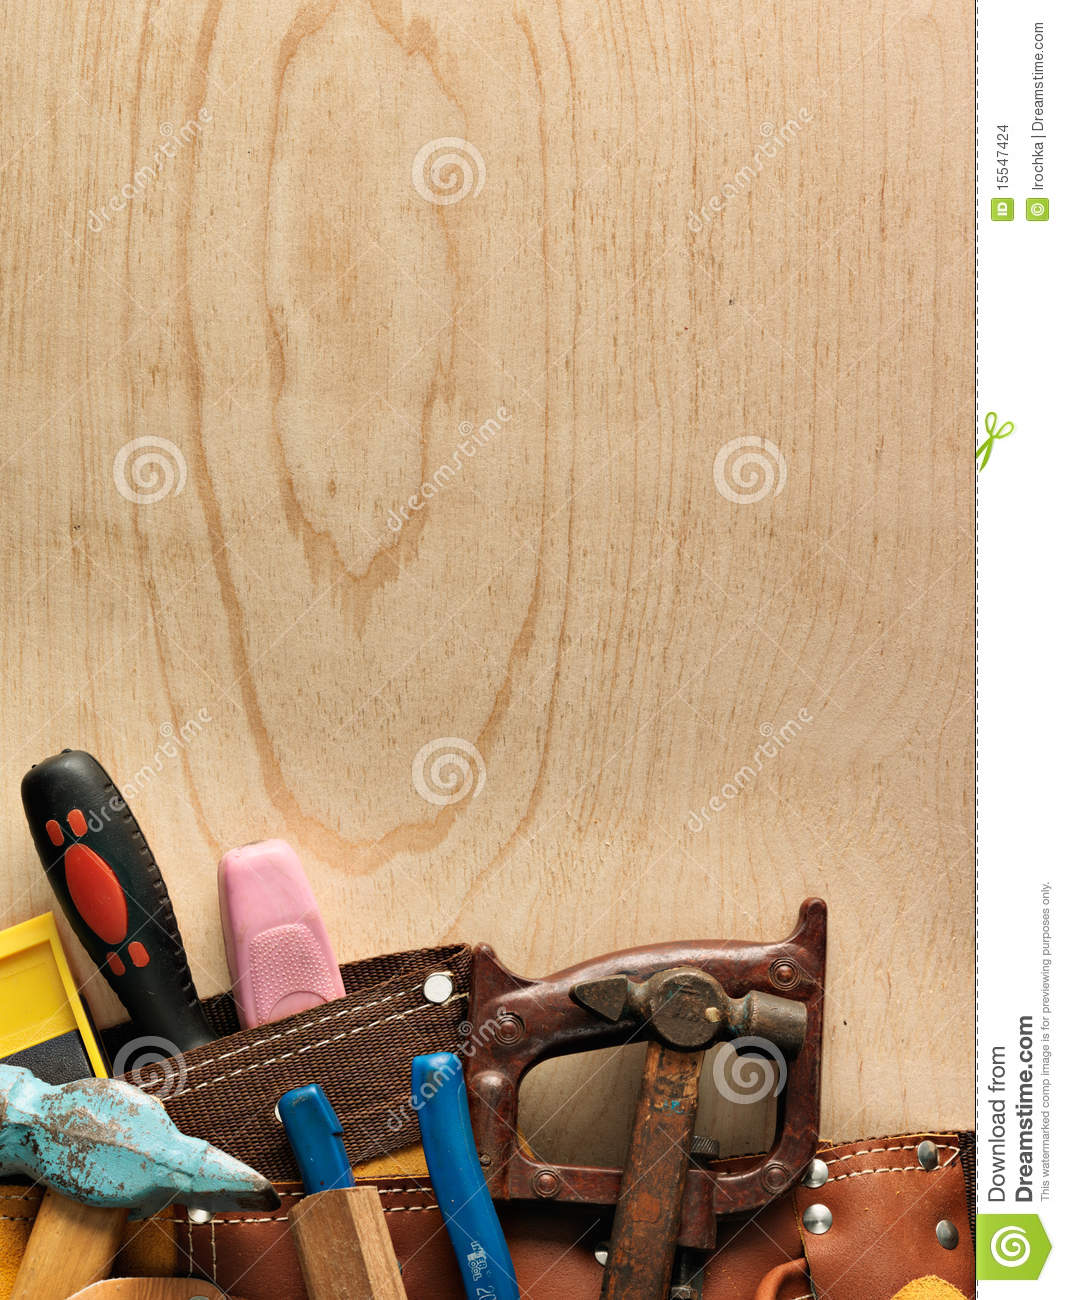 Carpentry background - photo#17